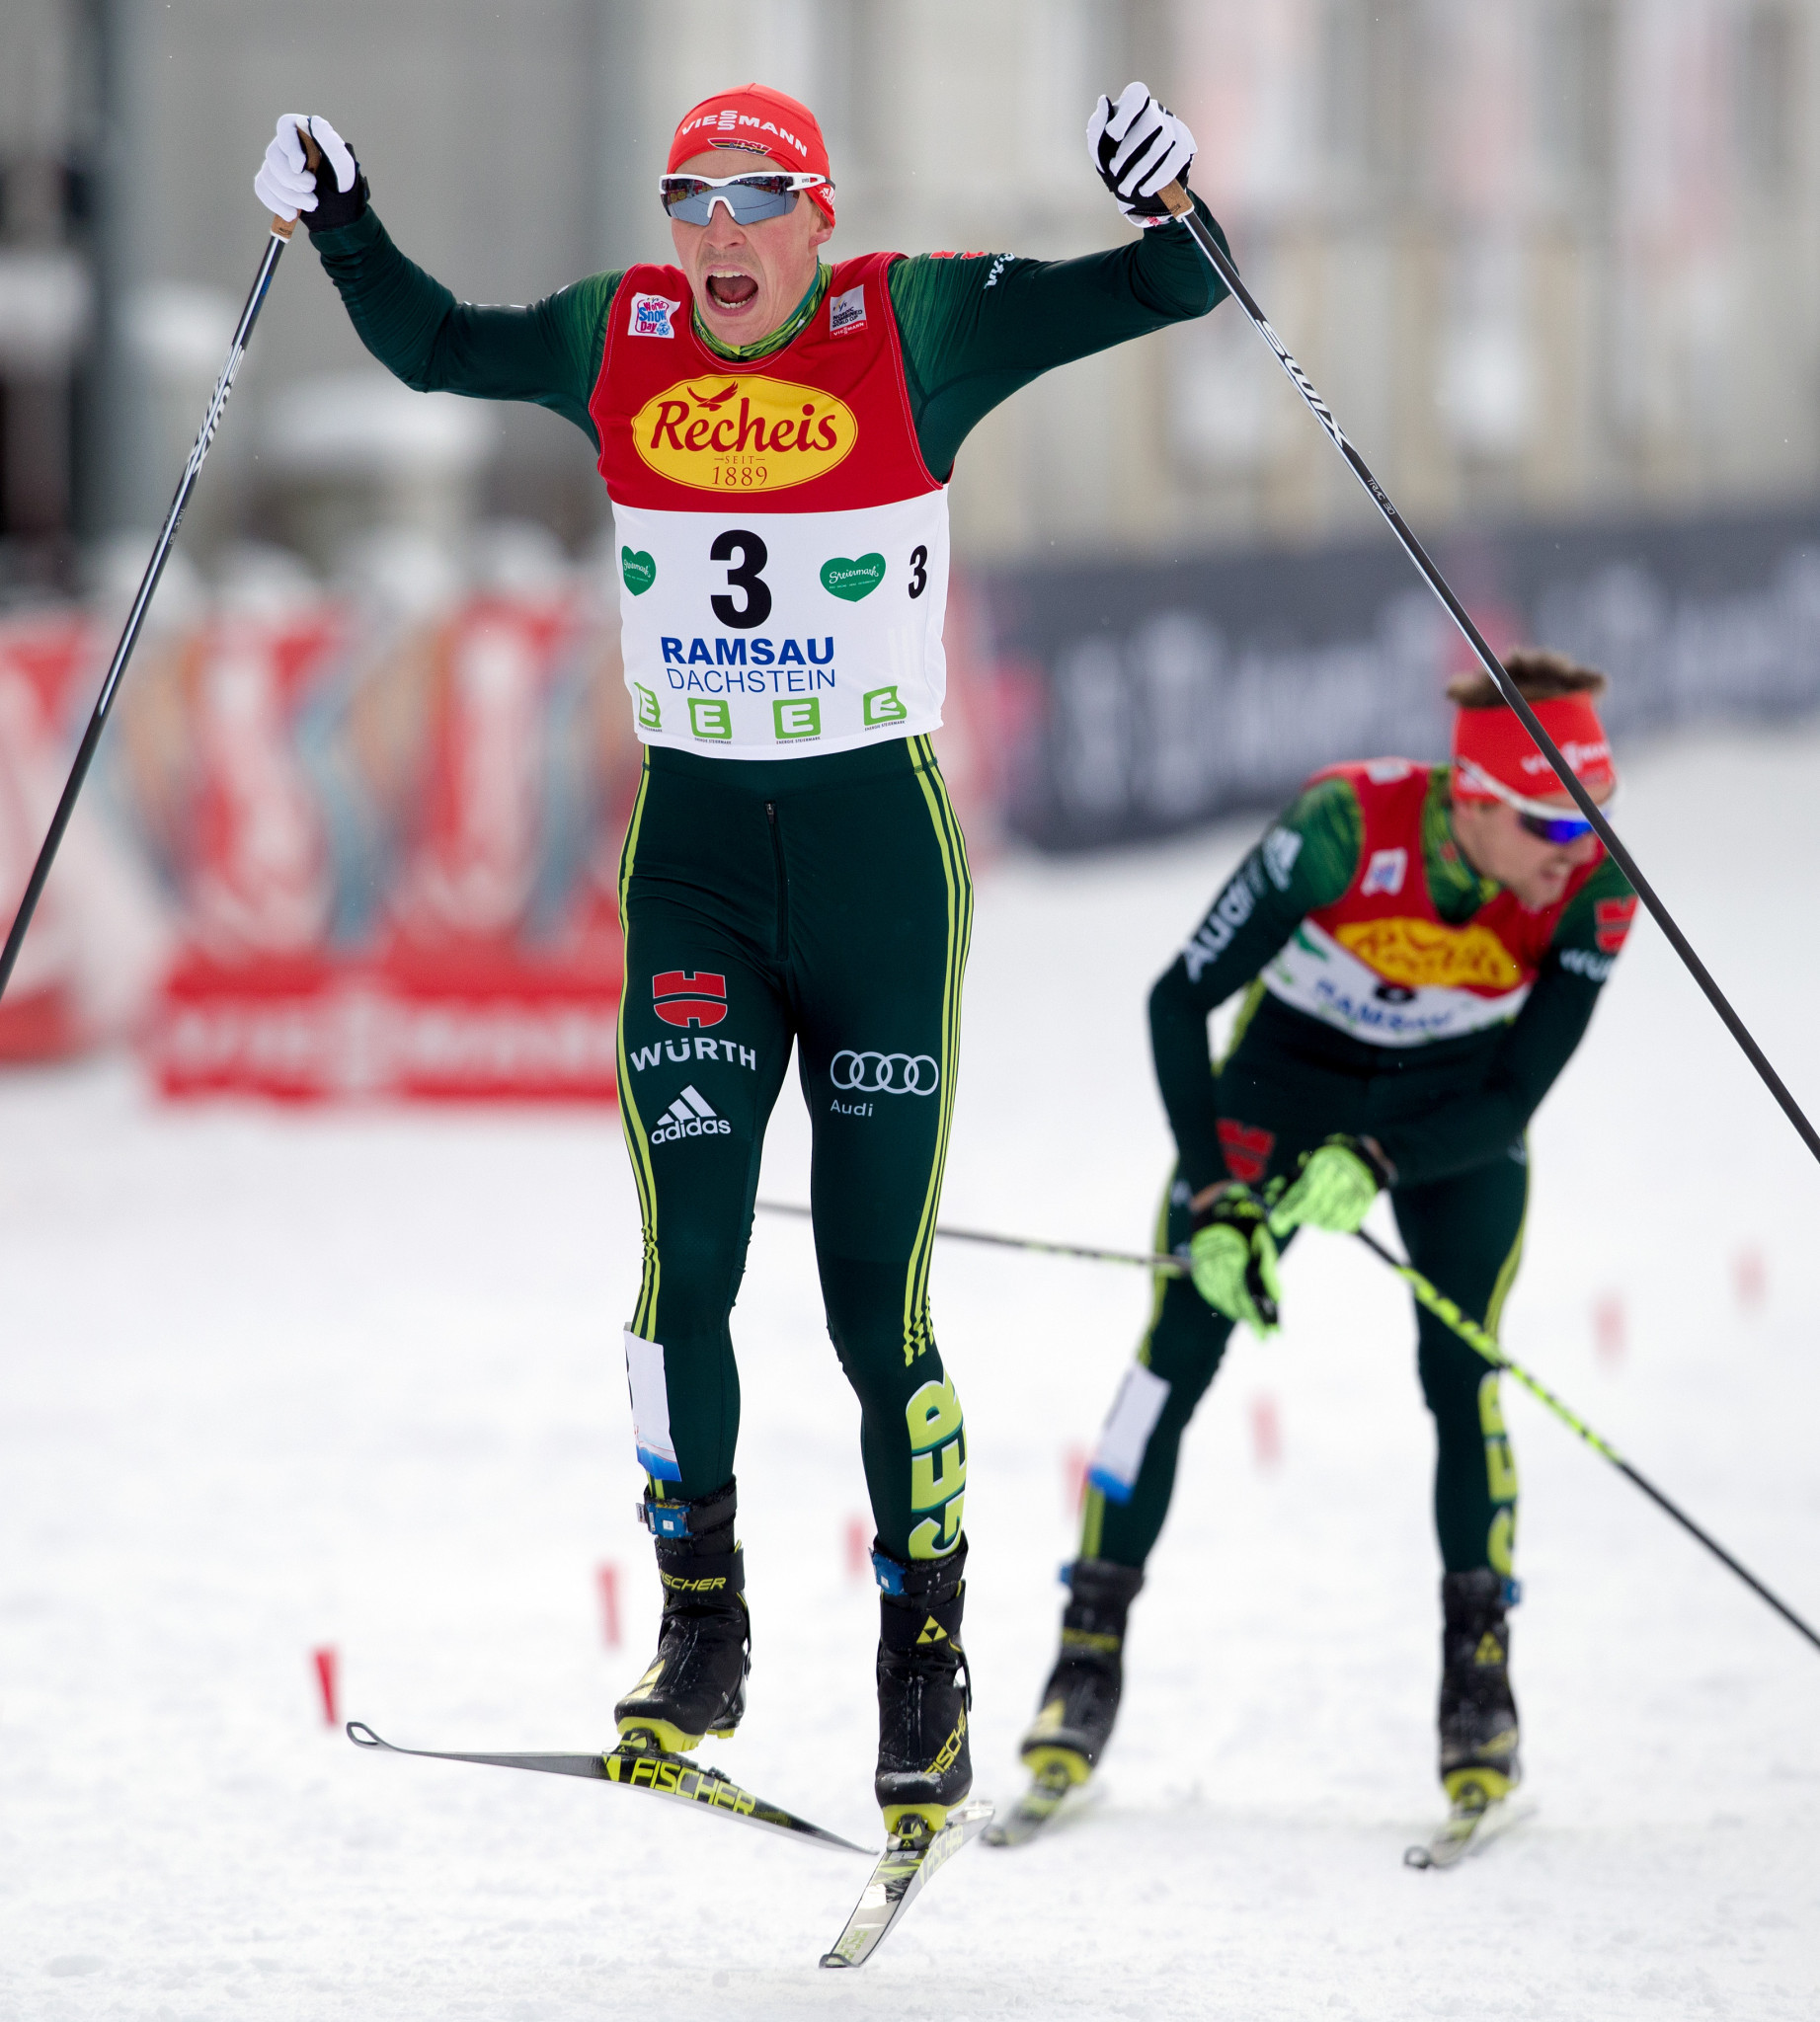 Frenzel returns to winning ways at Nordic Combined World Cup in Ramsau